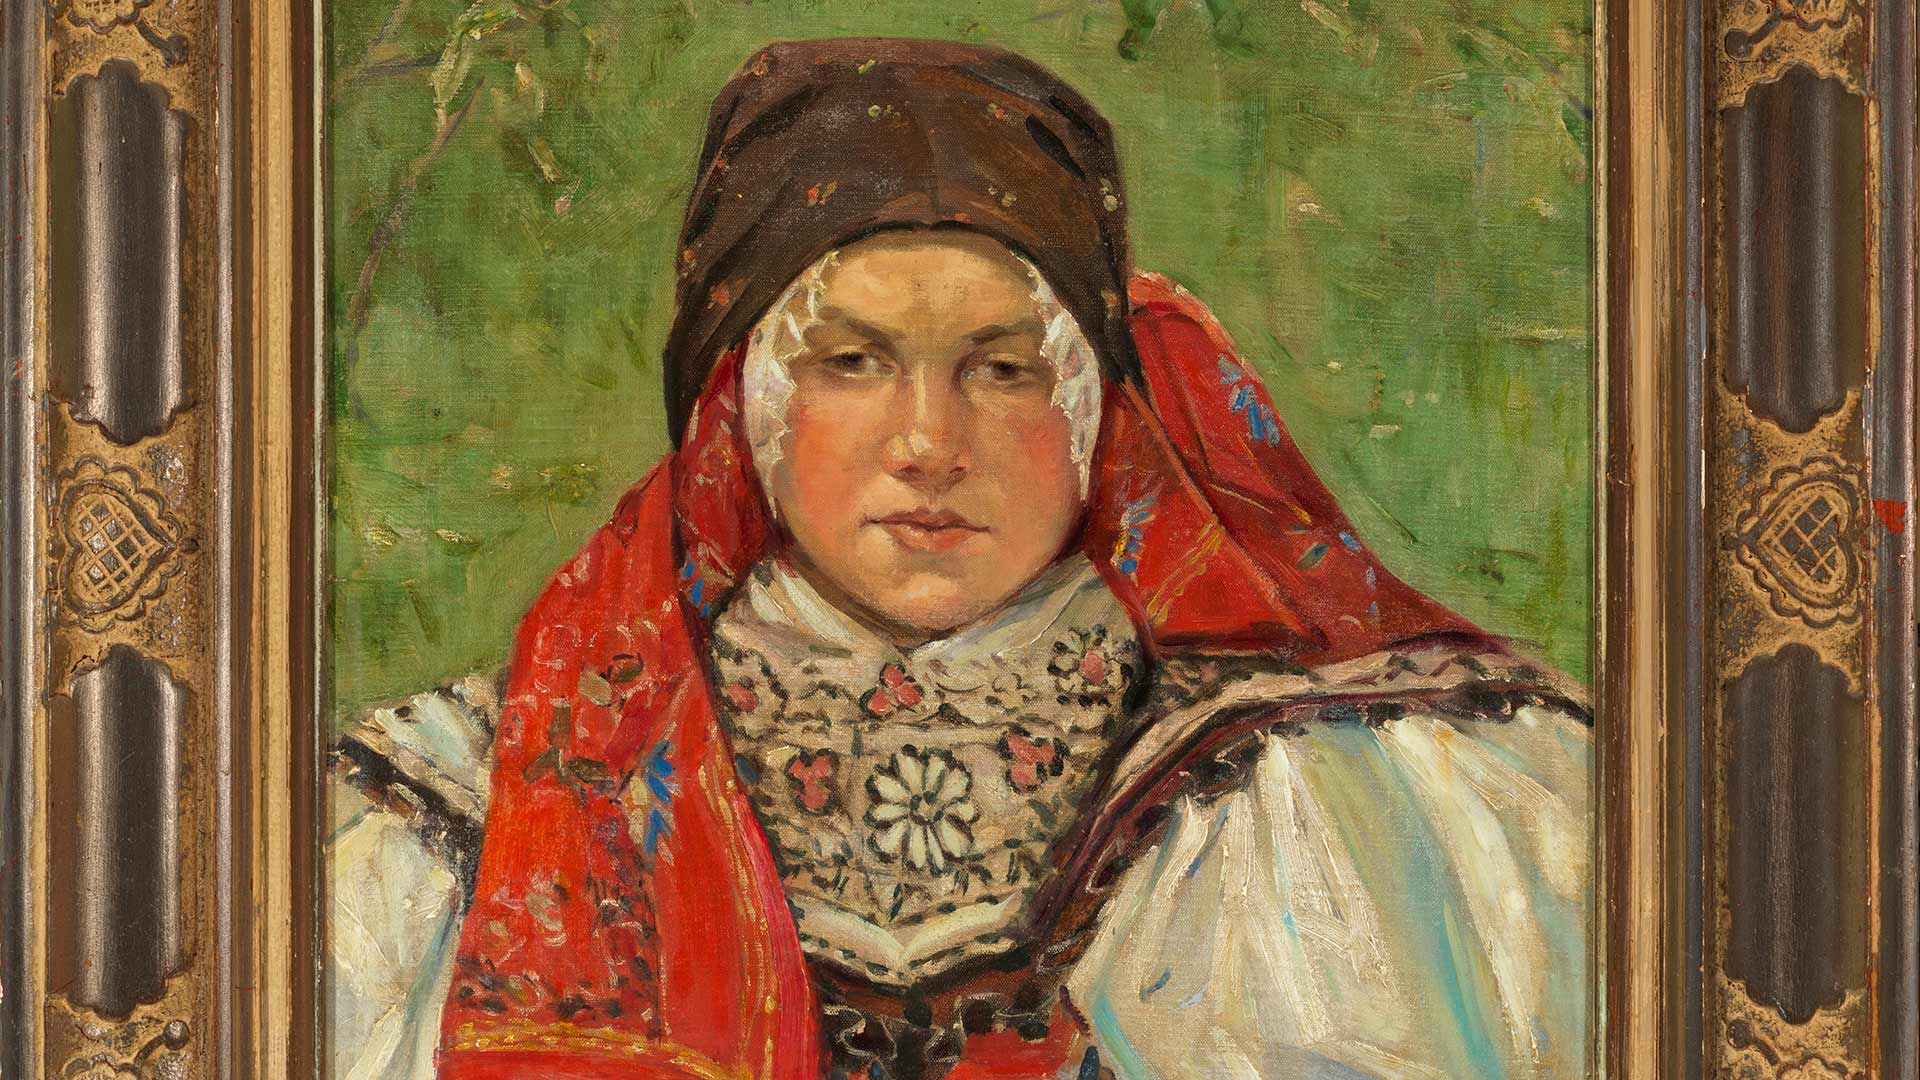 Woman with Headscarf(from Vacenovice or Ratiskovice)by Joža Uprka, c. 1897. Courtesy of George T. Drost.